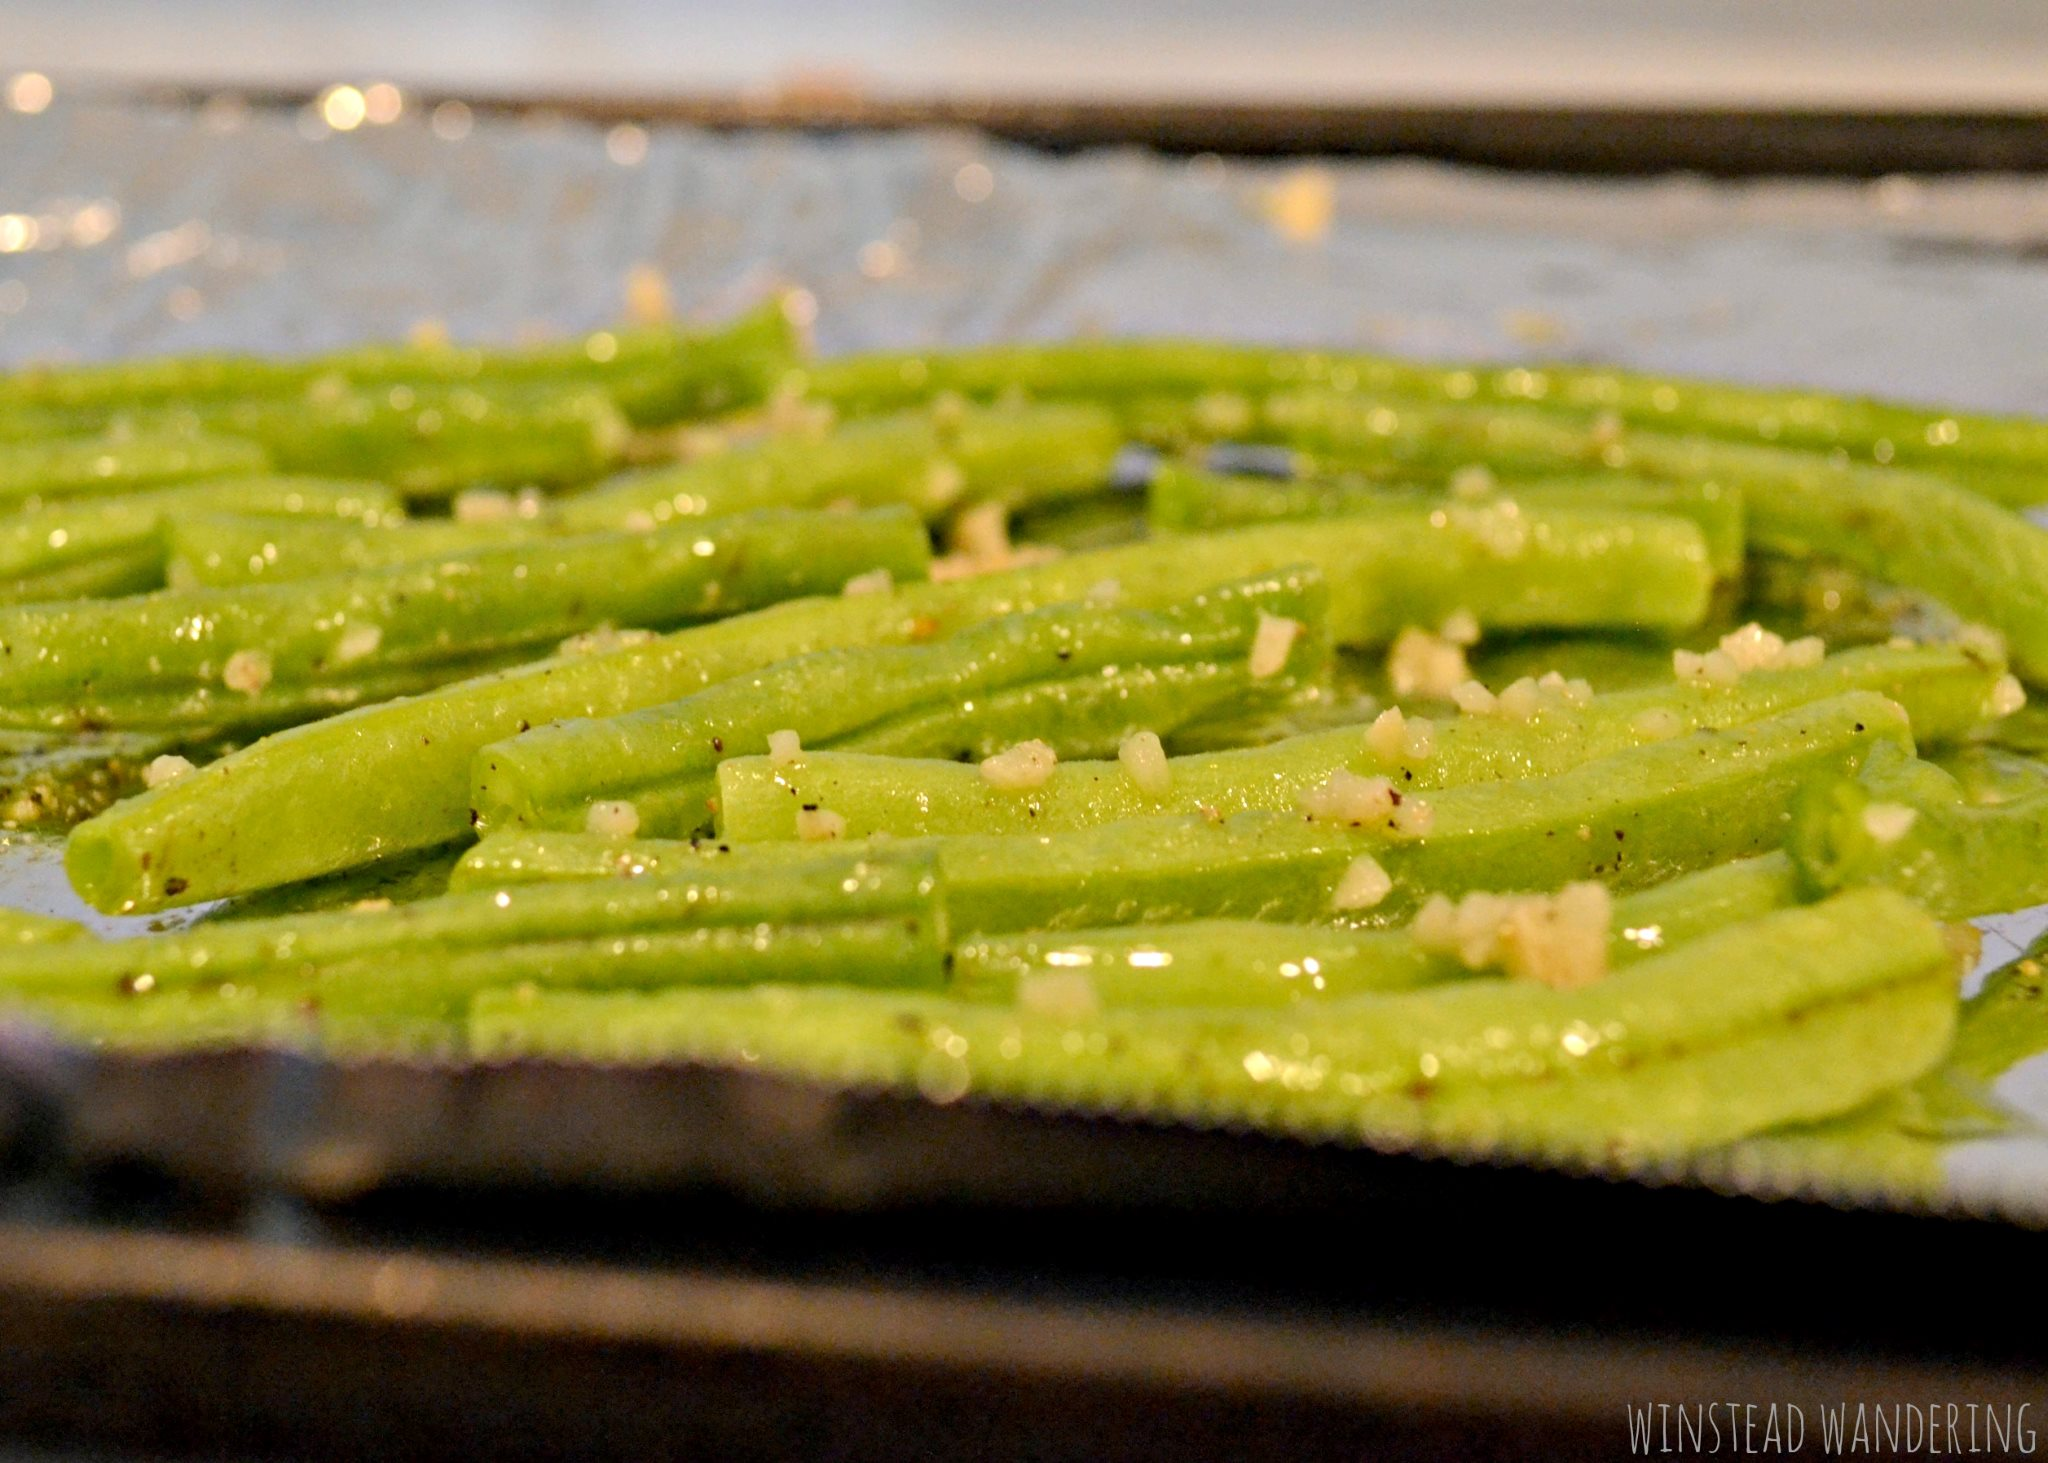 These baked garlic green beans are easy, healthy, and delicious. The best part? They only use a few ingredients and you don't have to dirty any pans or bowls to make them.